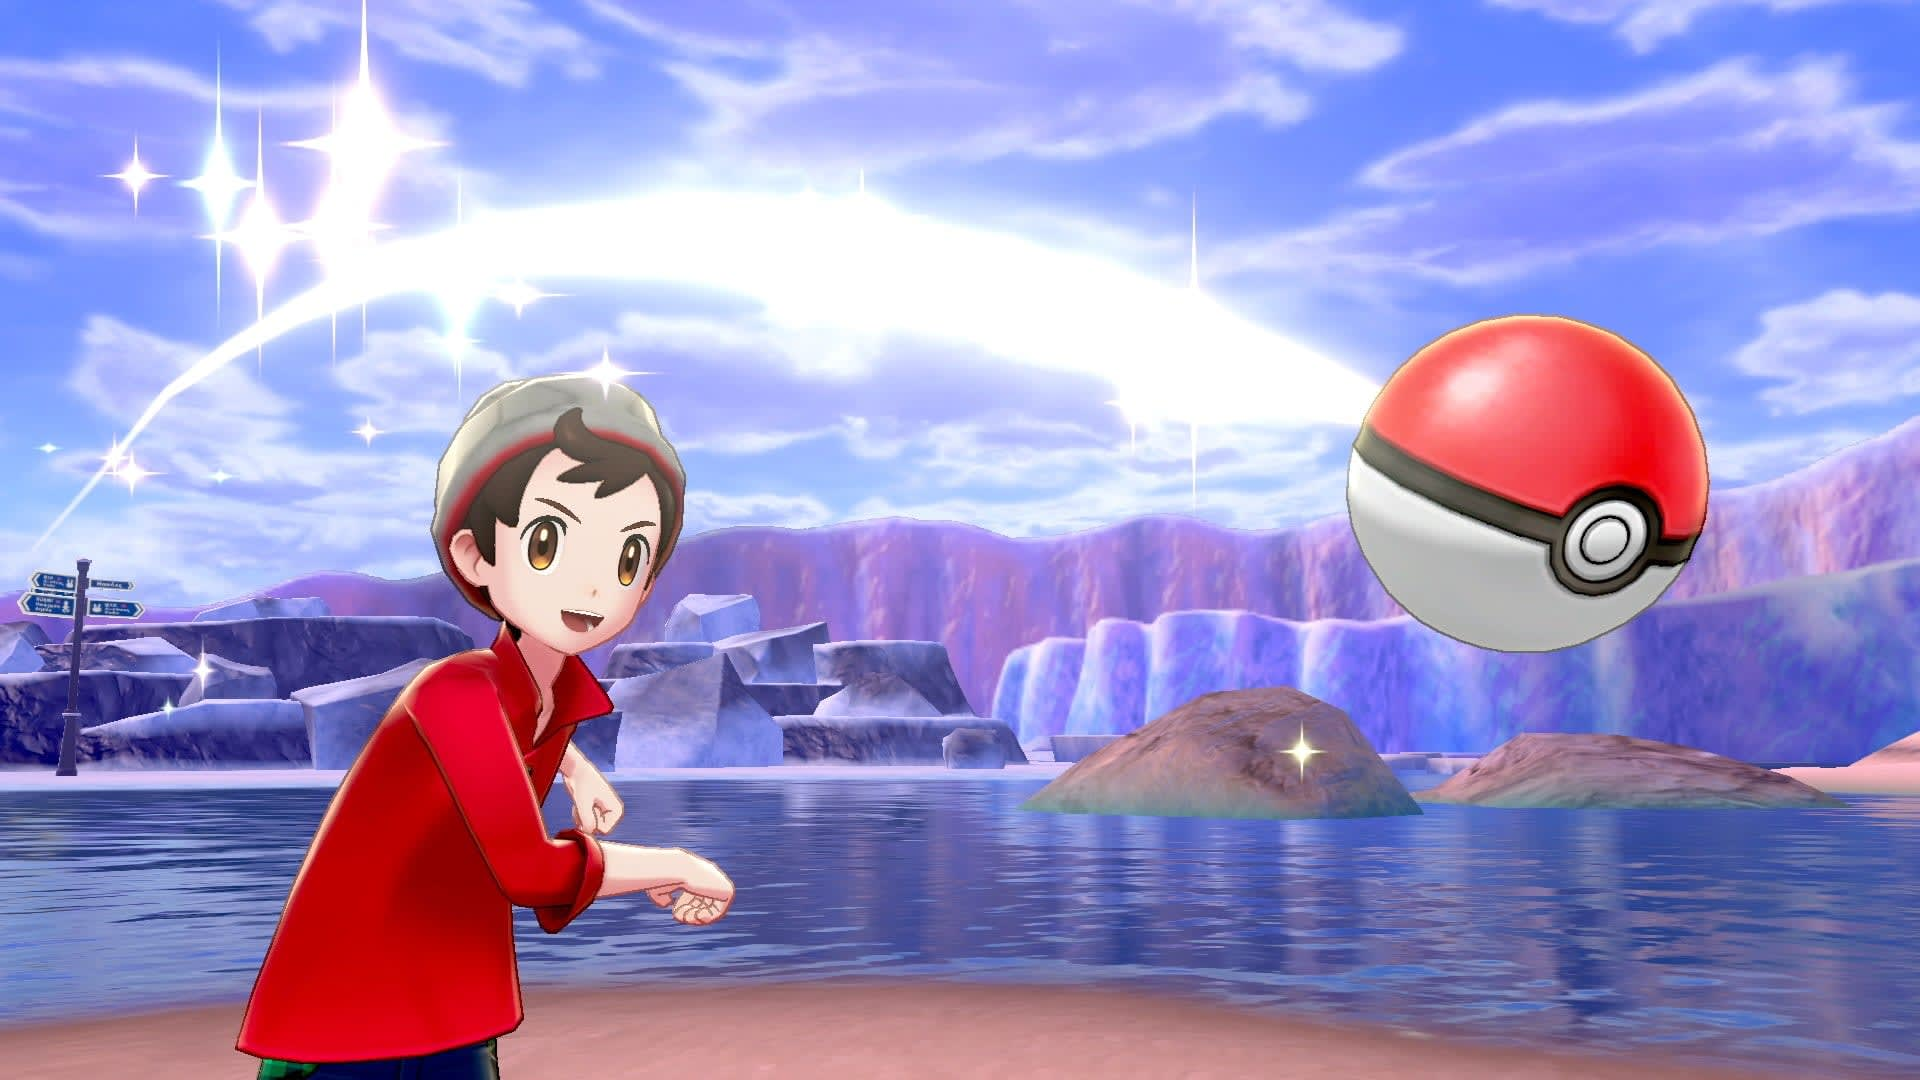 Watch The Pokemon Sword And Shield Nintendo Direct Right Here